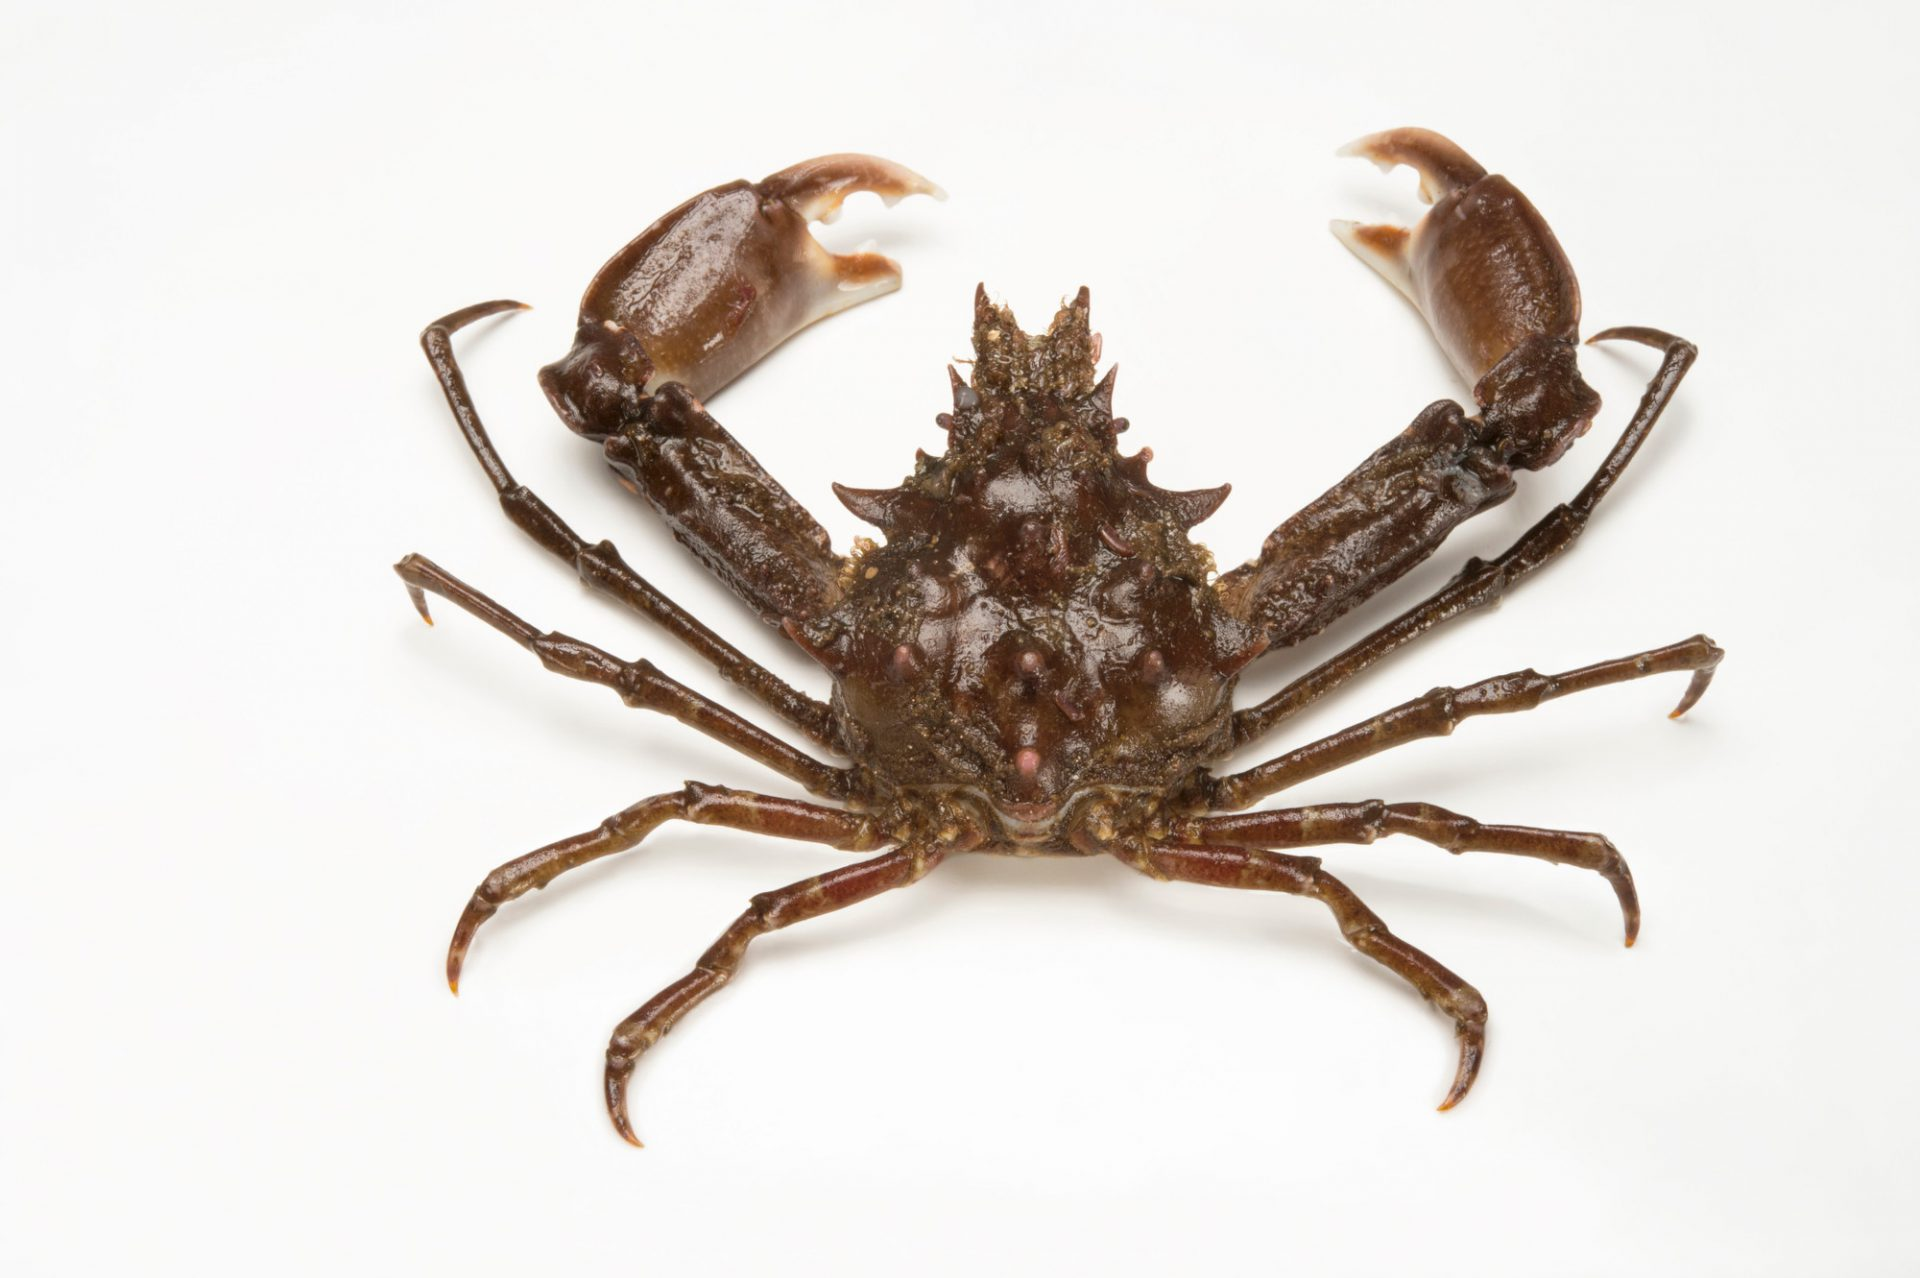 Picture of a Sharp-nosed crab or long-armed crab (Scyra acutifrons) at the National Mississippi River Museum and Aquarium in Dubuque, Iowa.